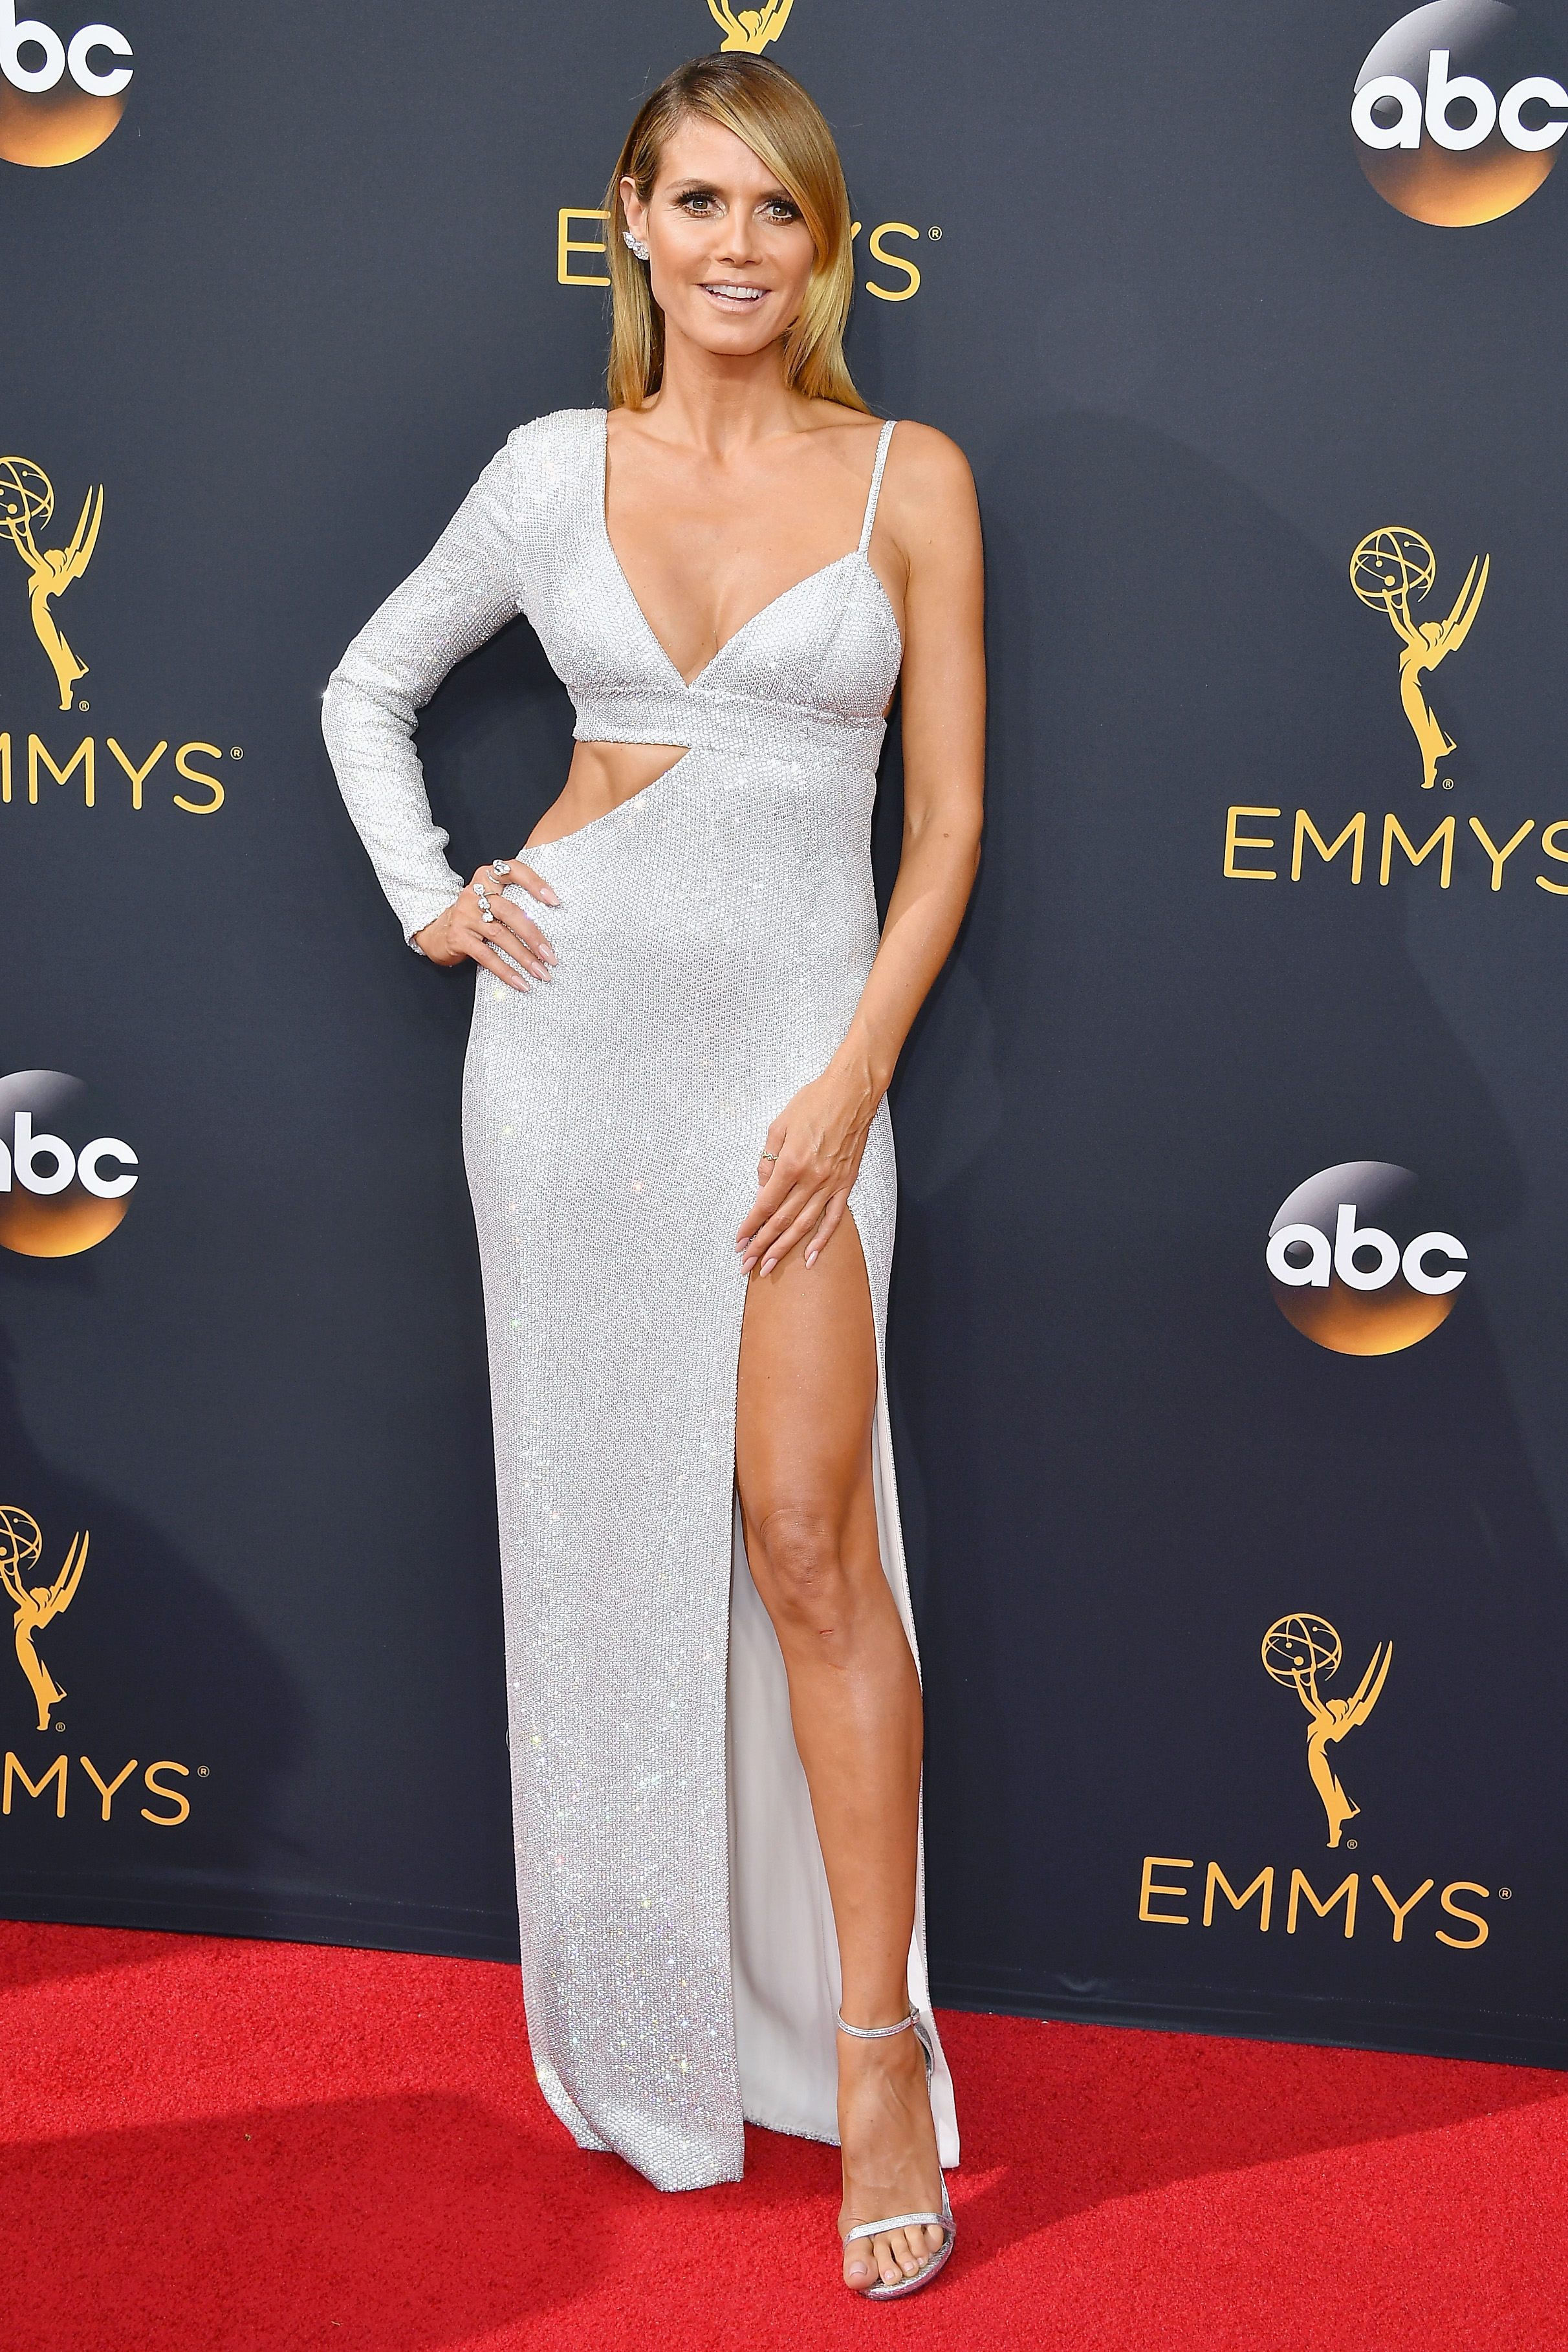 Heidi Klum arrives at the 68th Annual Primetime Emmy Awards at Microsoft Theater on Sept. 18, 2016 in Los Angeles.